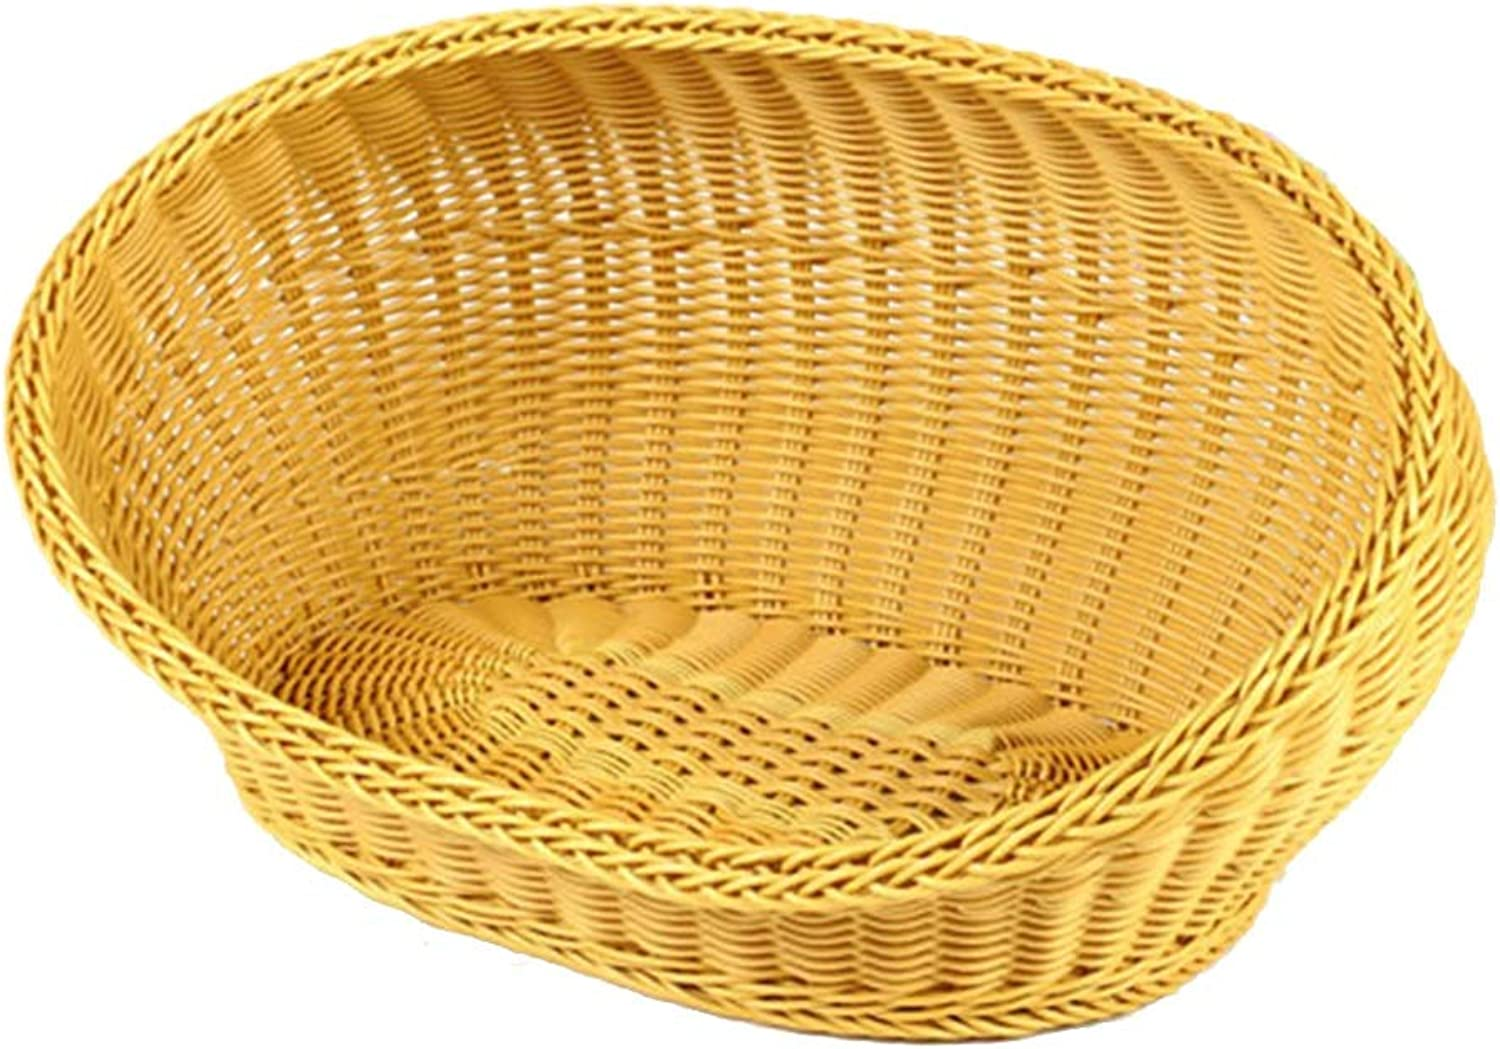 Qz Wicker Sleeping Couch  Oval Cat Dog Bed Basket, Indoor Outddor kennel, Yellow (Size   37×26×28cm)